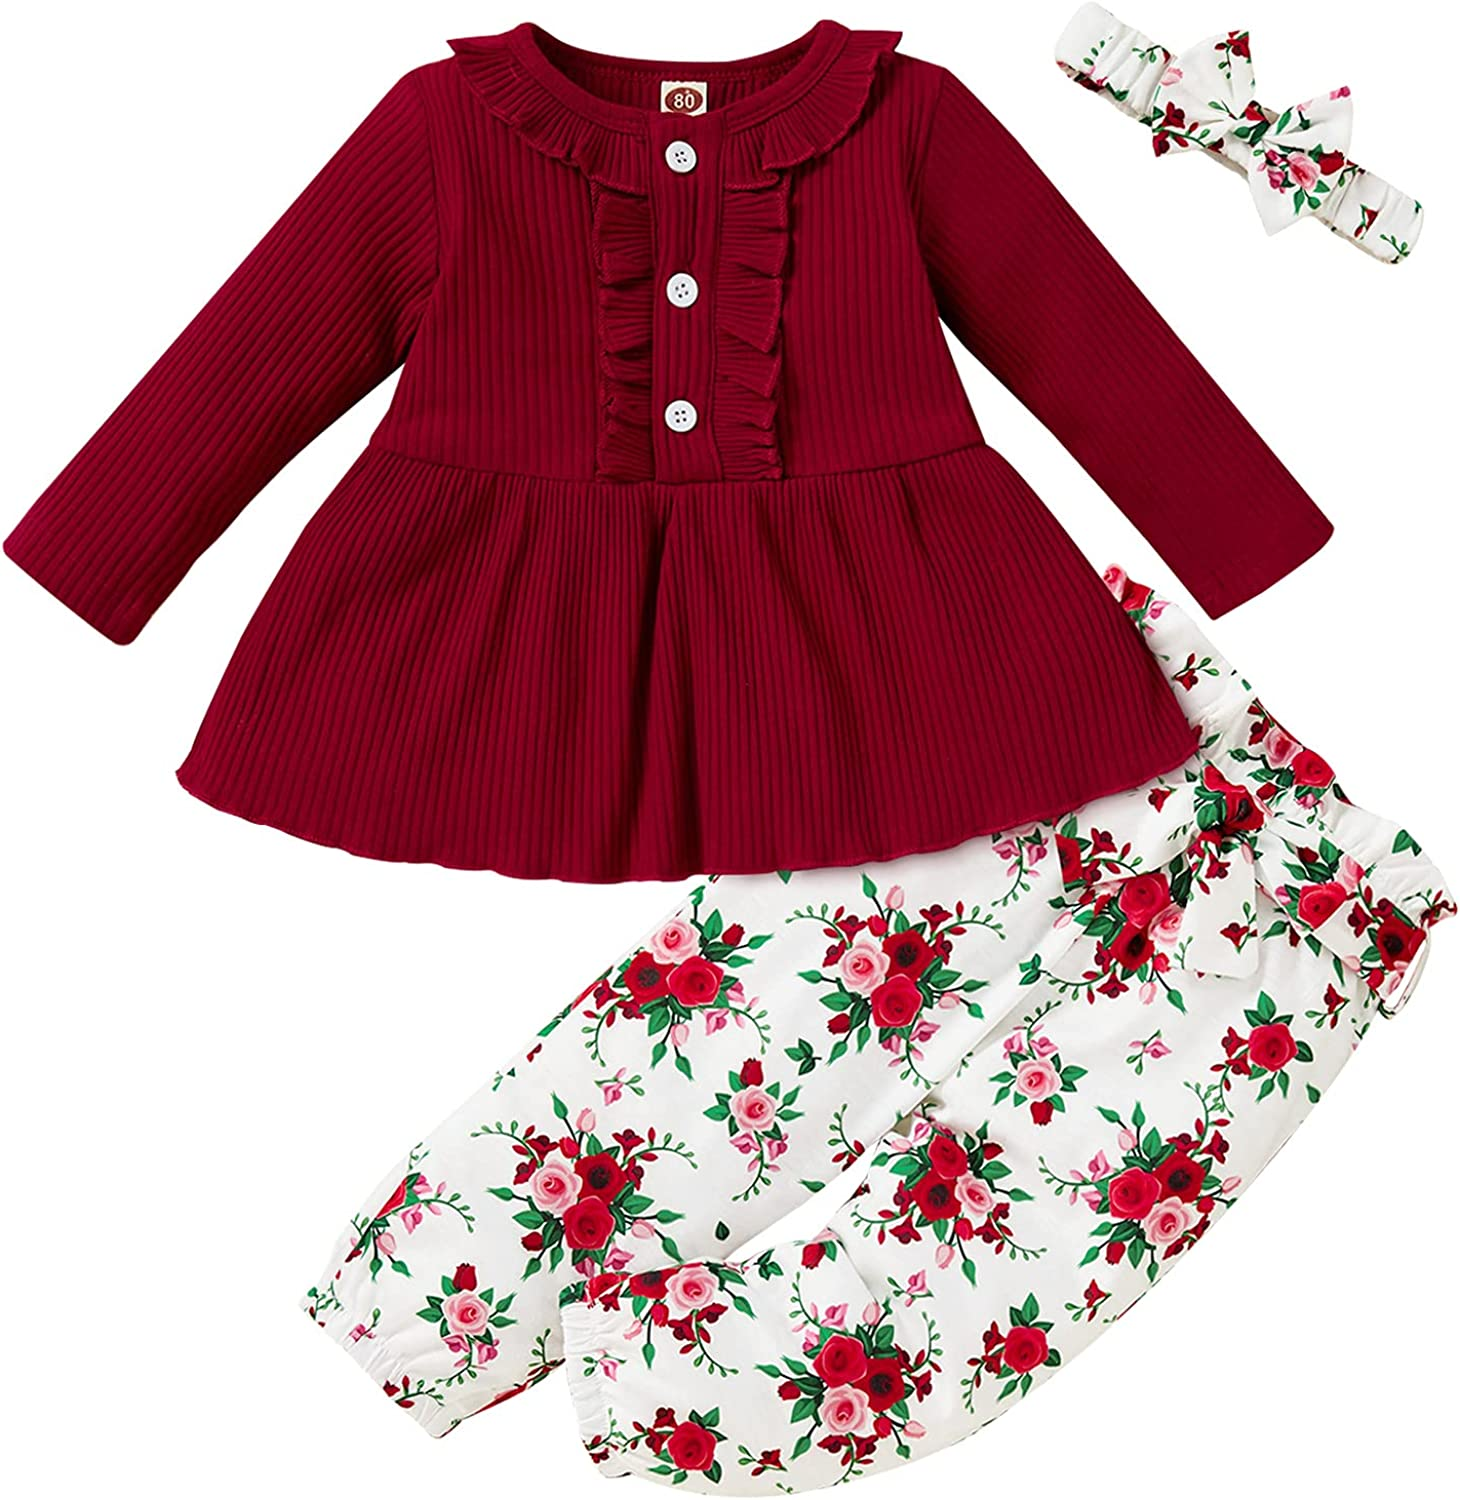 Todder Girls Pants Sets,Baby Girls Outfits,Knitted Ruffles Long